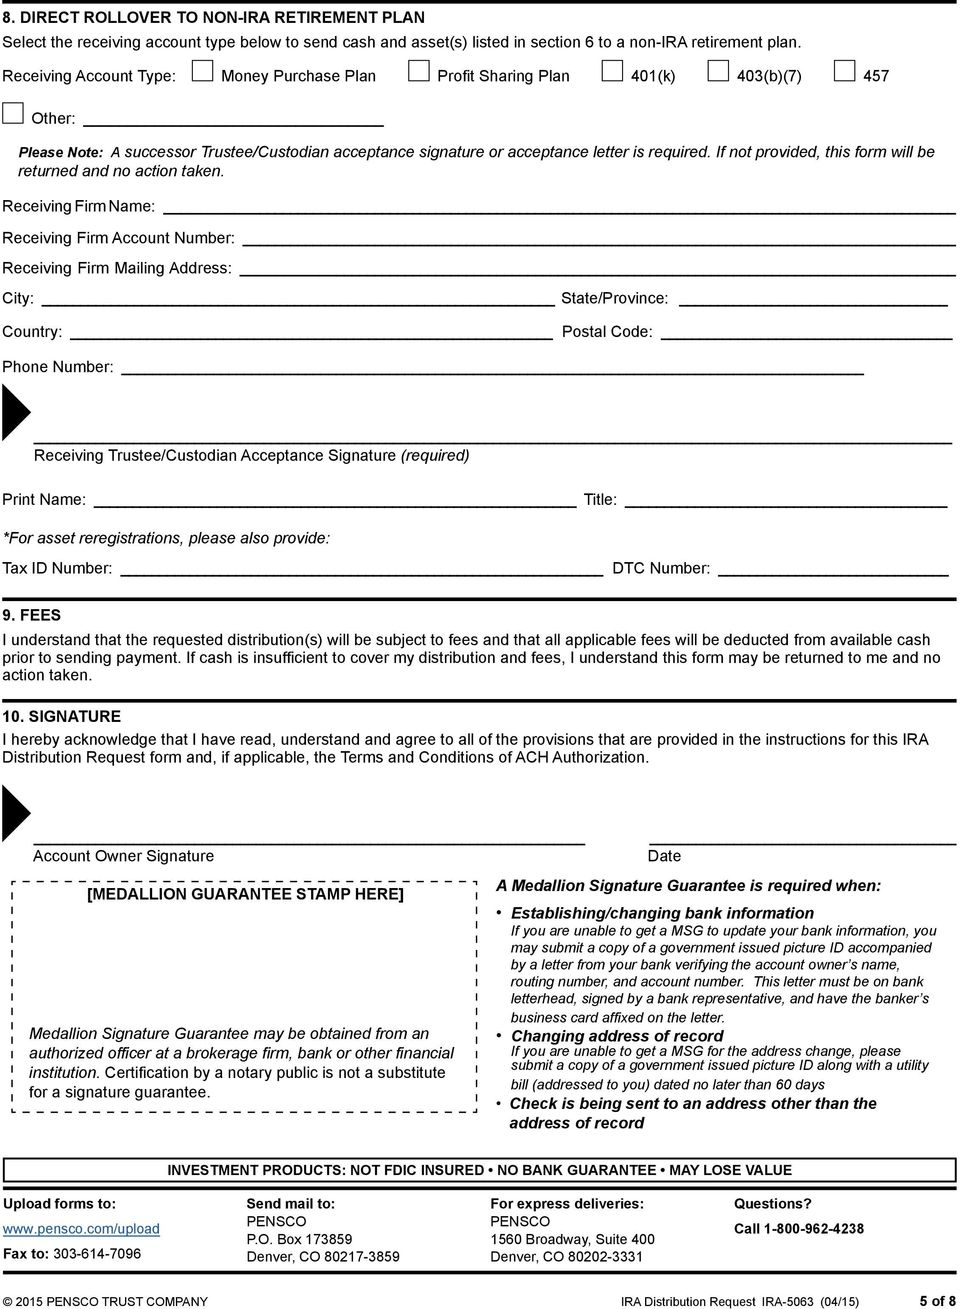 If not provided, this form will be returned and no action taken.